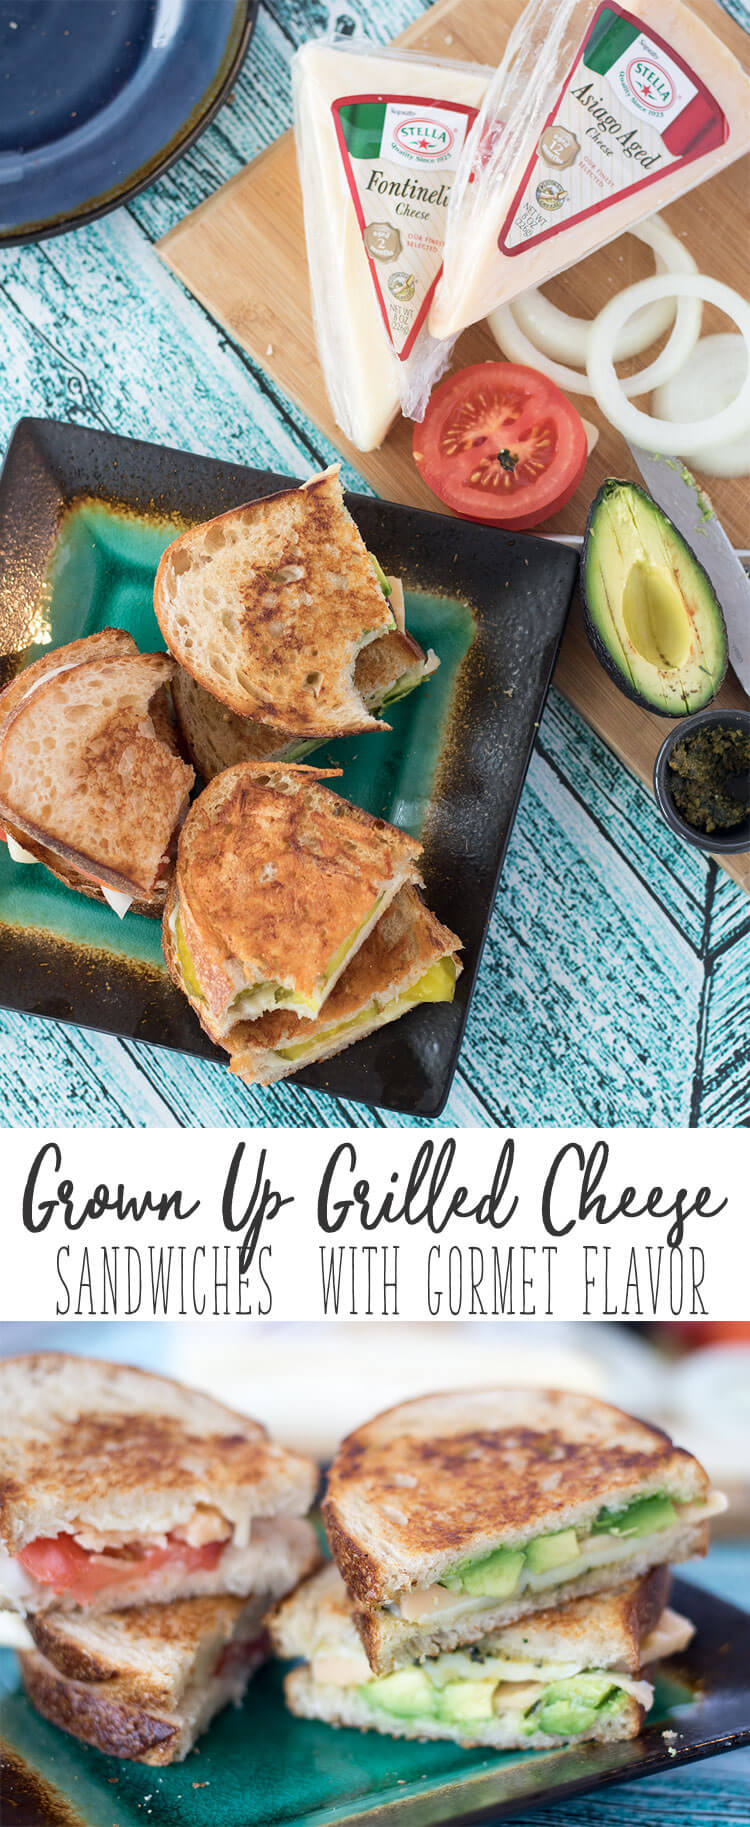 grown up grilled cheese sandwiches with gormet flavor from Life Sew Savory #StellaCheeses #TasteofAuthenticity